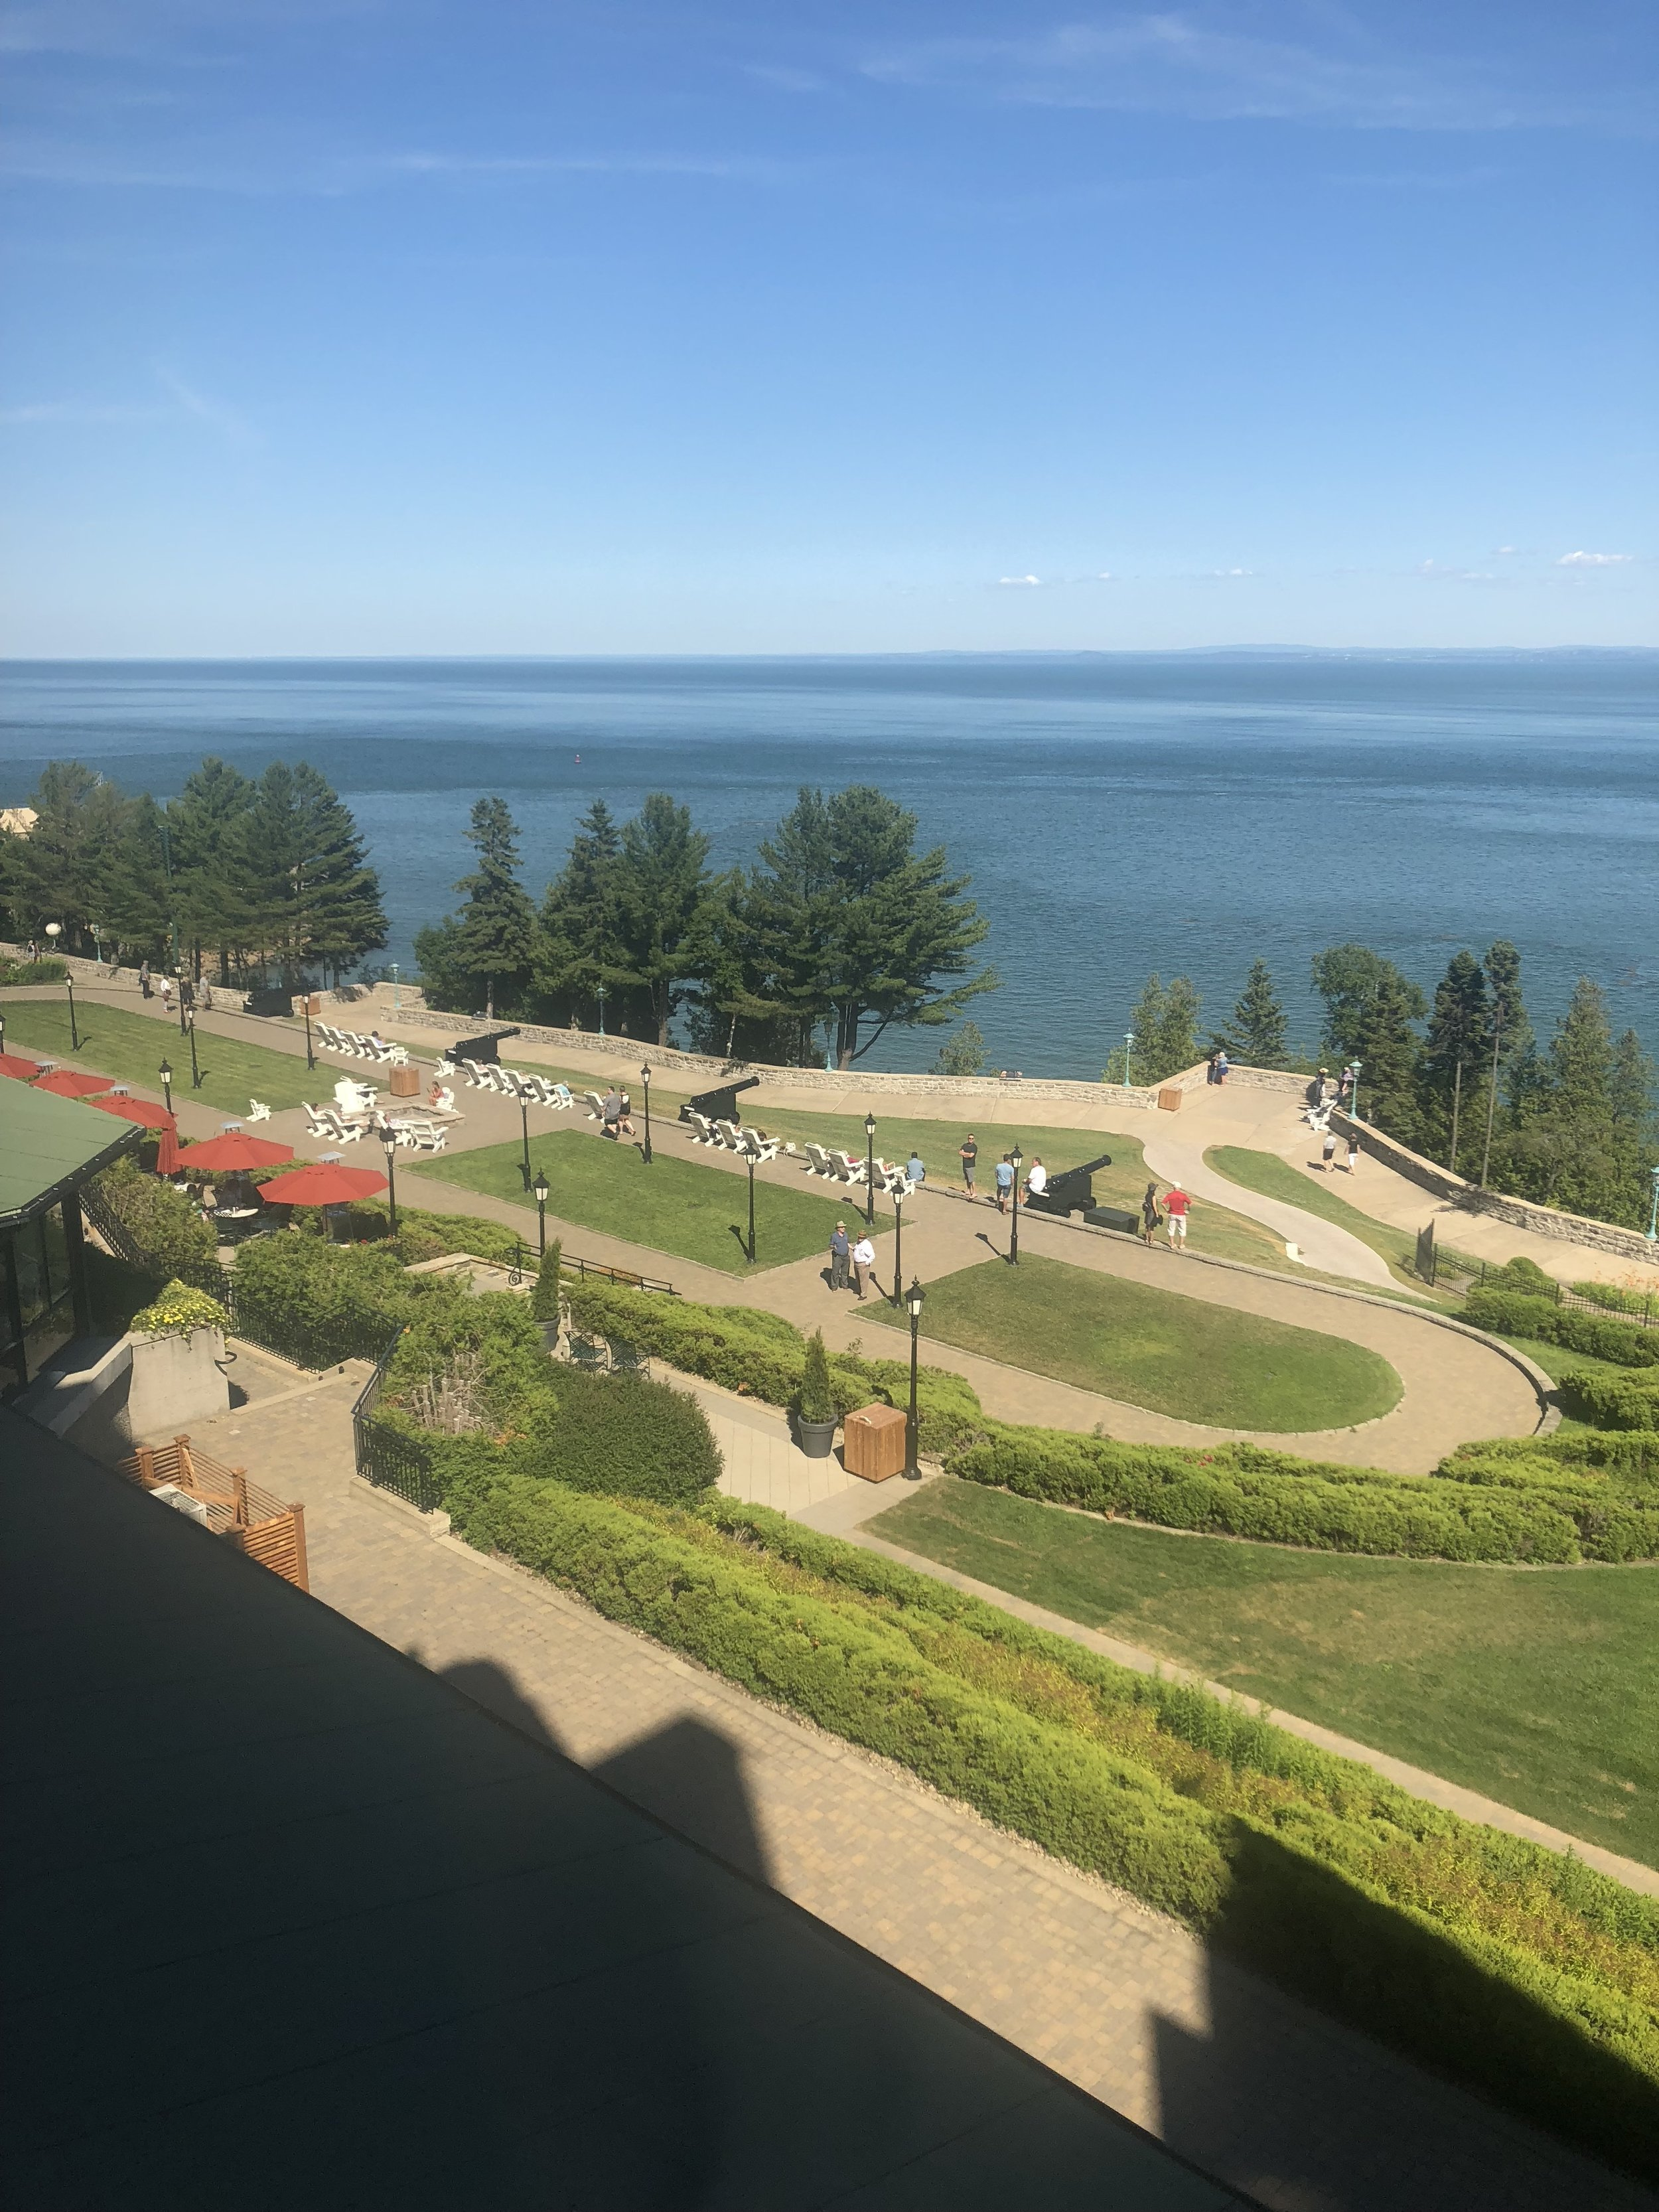 The view from my hotel room at the Fairmont Le Chateau Richelieu